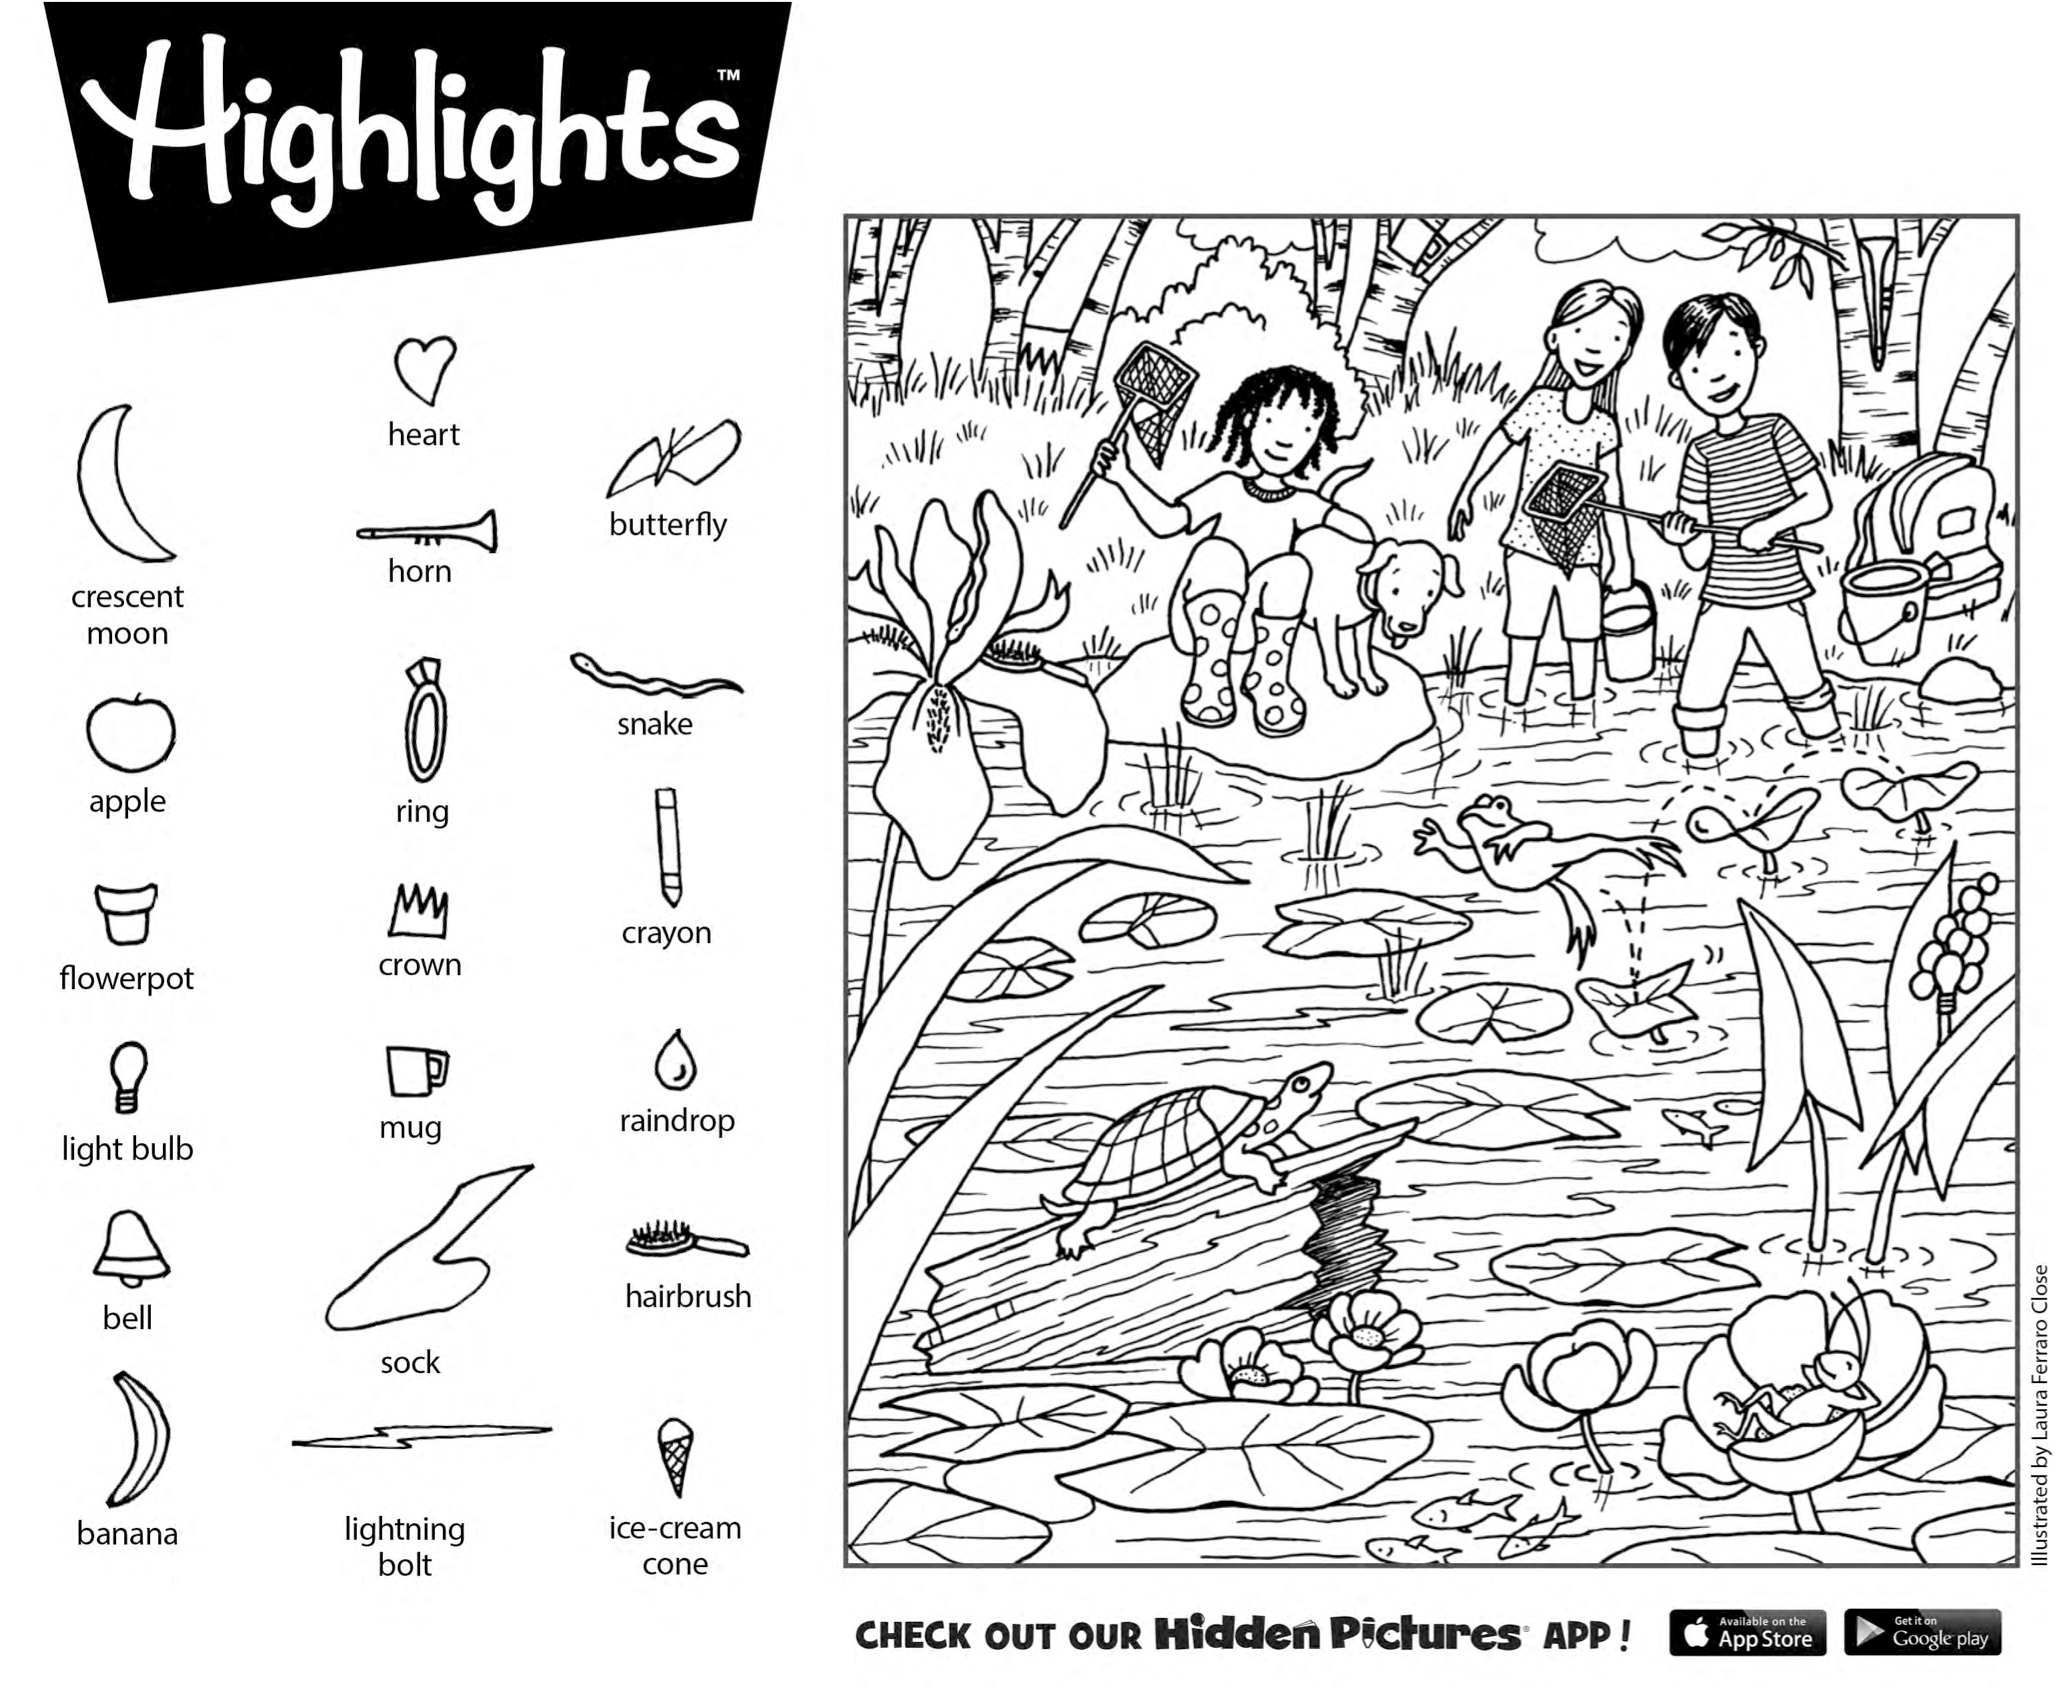 Download This Free Printable Hidden Pictures Puzzle From Highlights - Free Printable Hidden Pictures